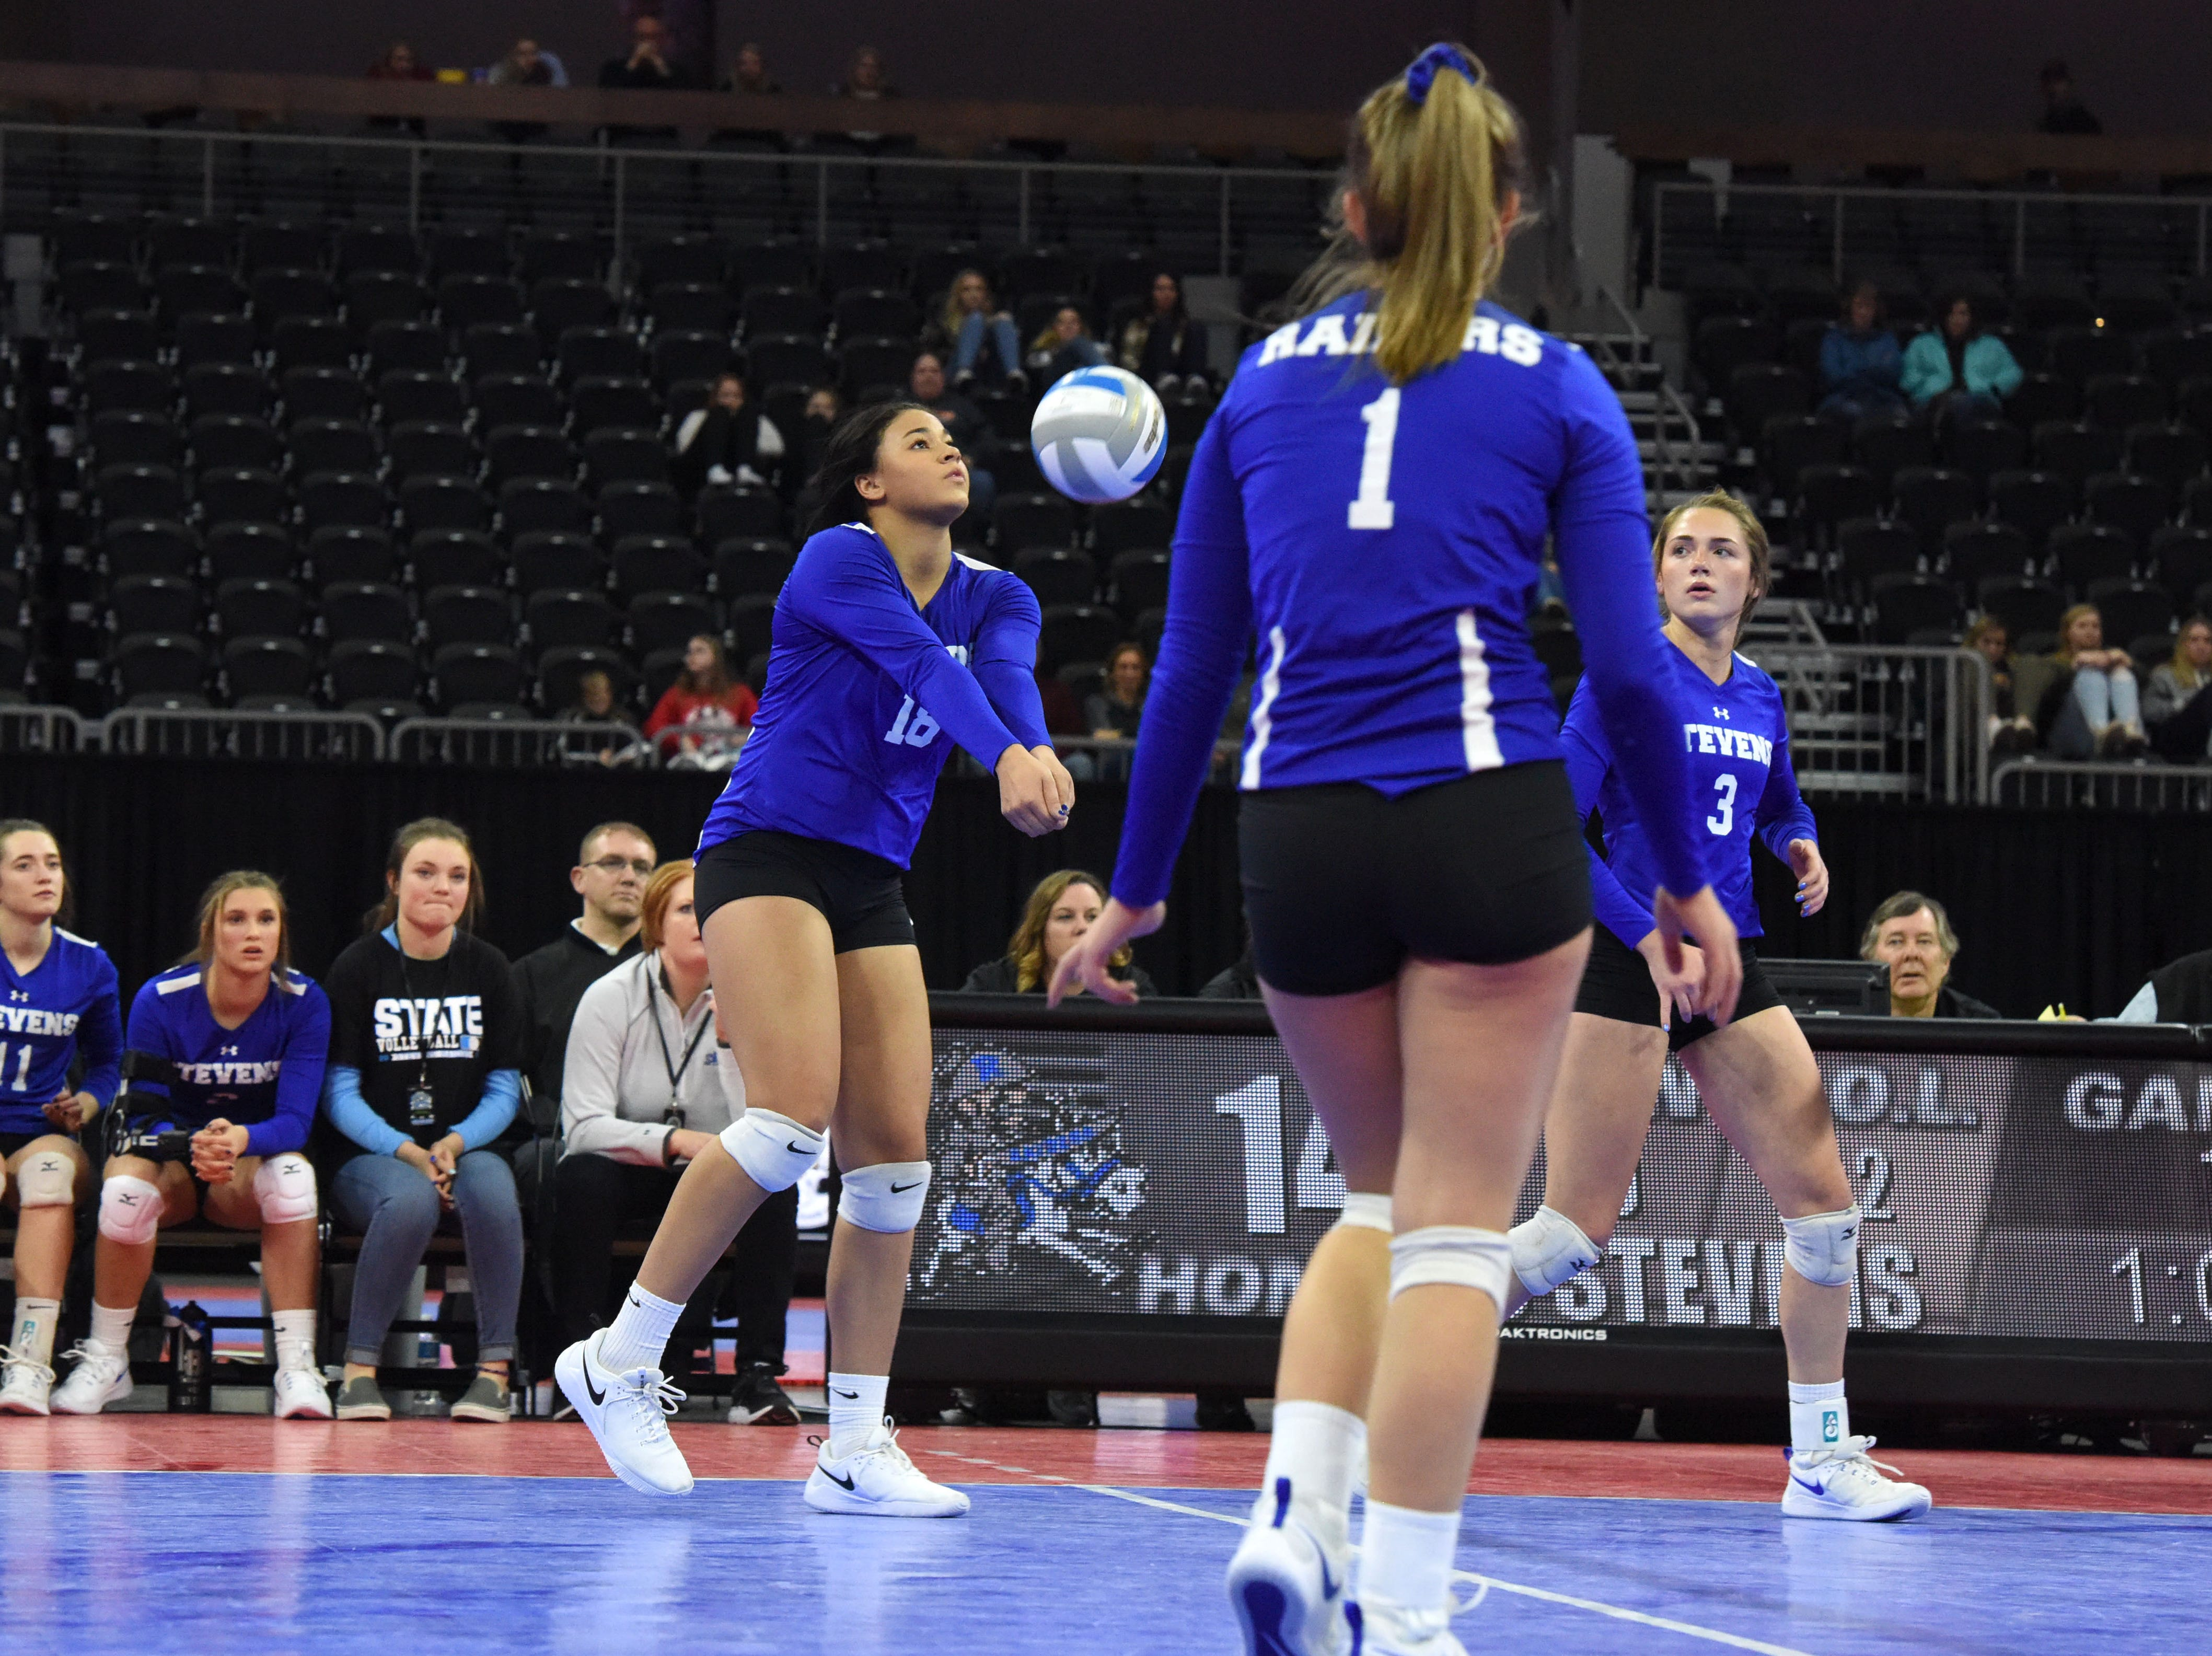 Rapid City's Kyah Watson (18) bumps the ball during a match against Washington, Saturday, Nov. 17, 2018, at the Denny Sanford Premier Center in Sioux Falls, S.D.